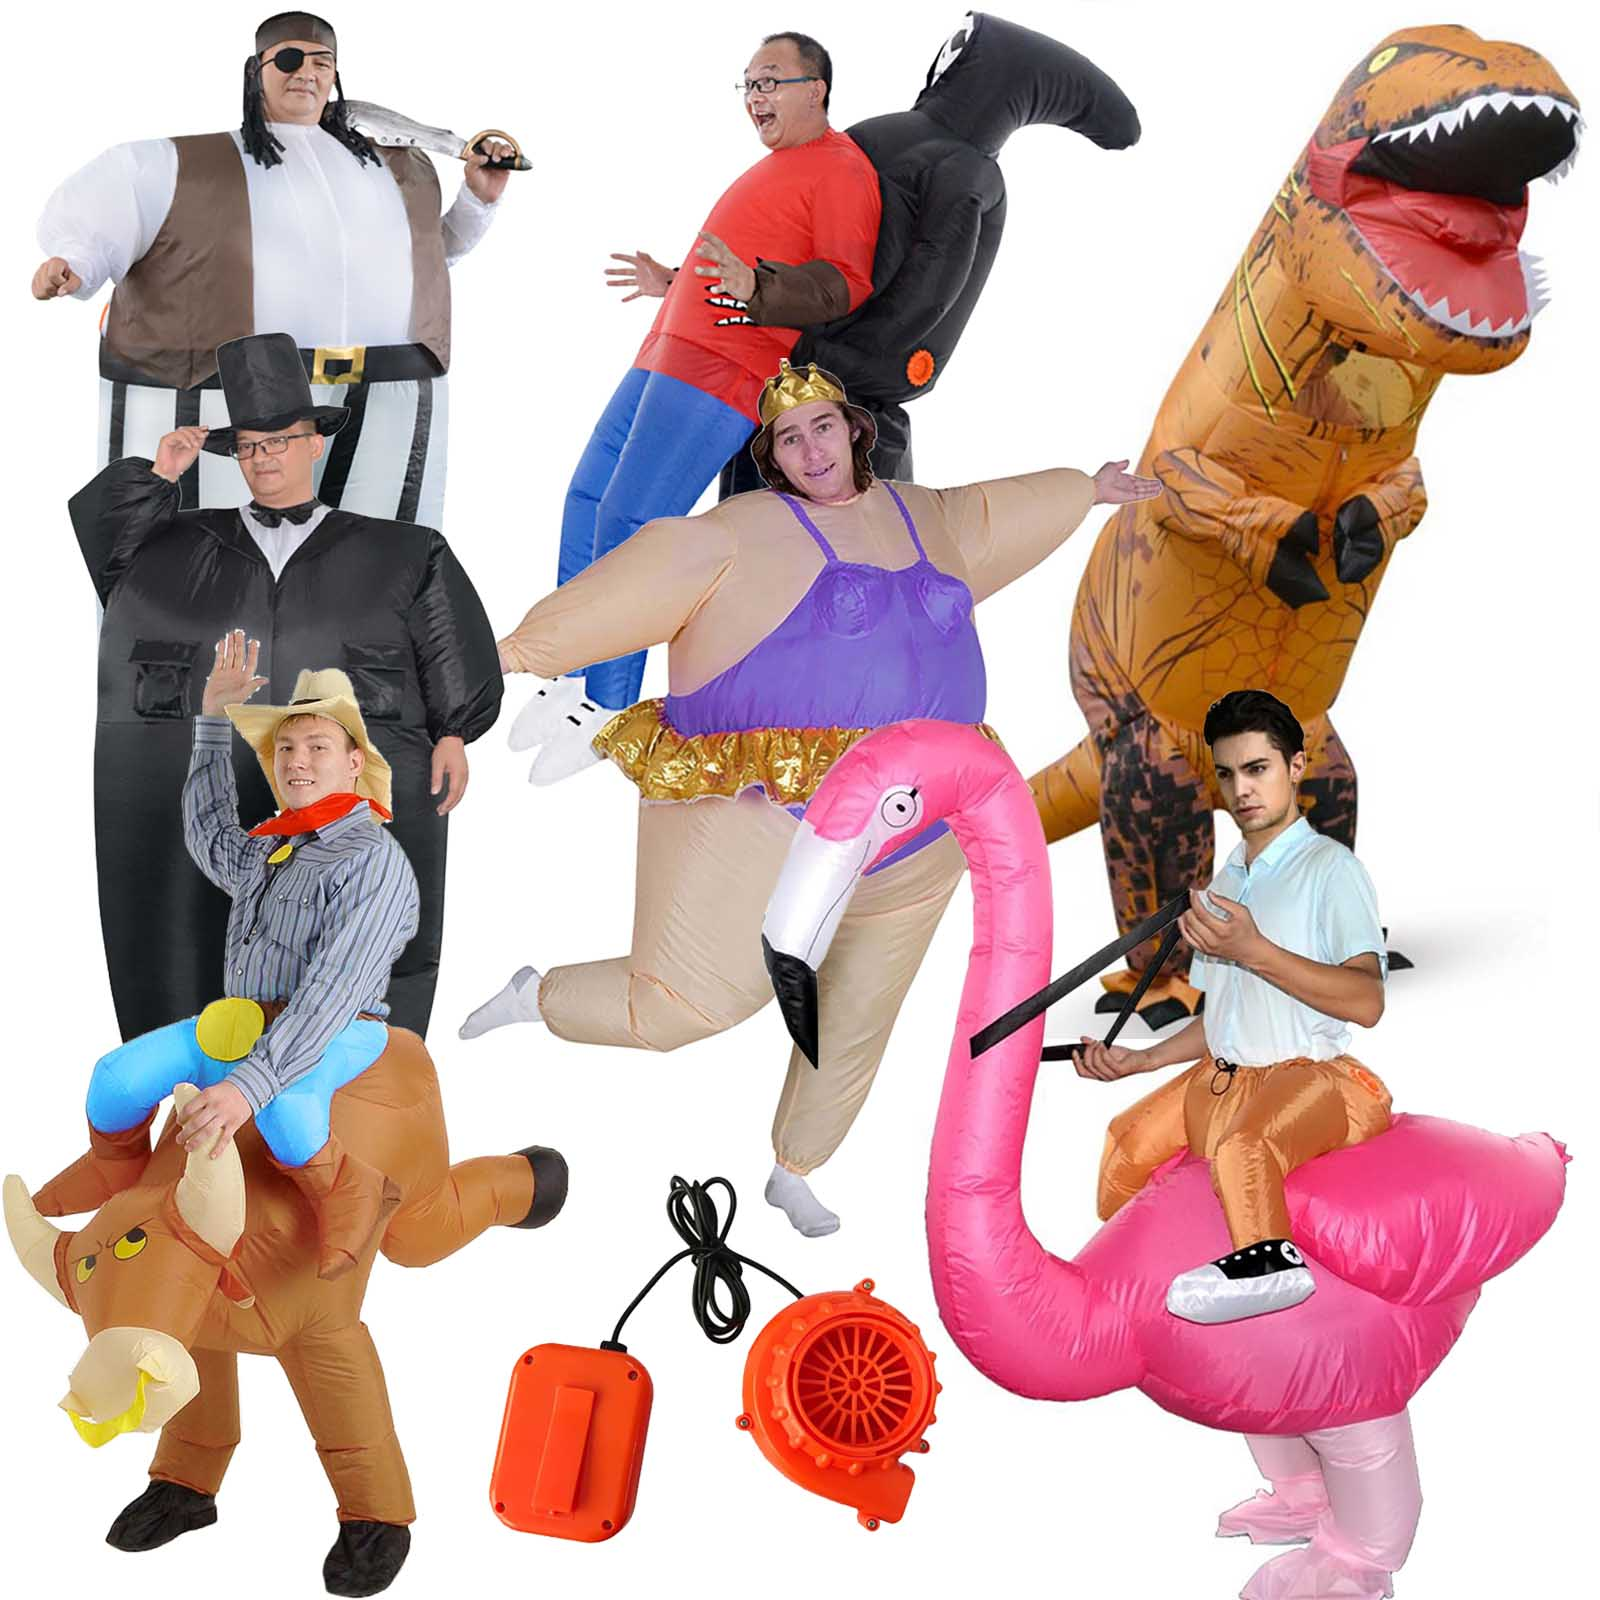 Halloween Inflatable Costume For Adult Kids Blow Up Fat Suit Funny Fancy Dress Party Ghost Grim Reaper Dinosaur Clown Pirate